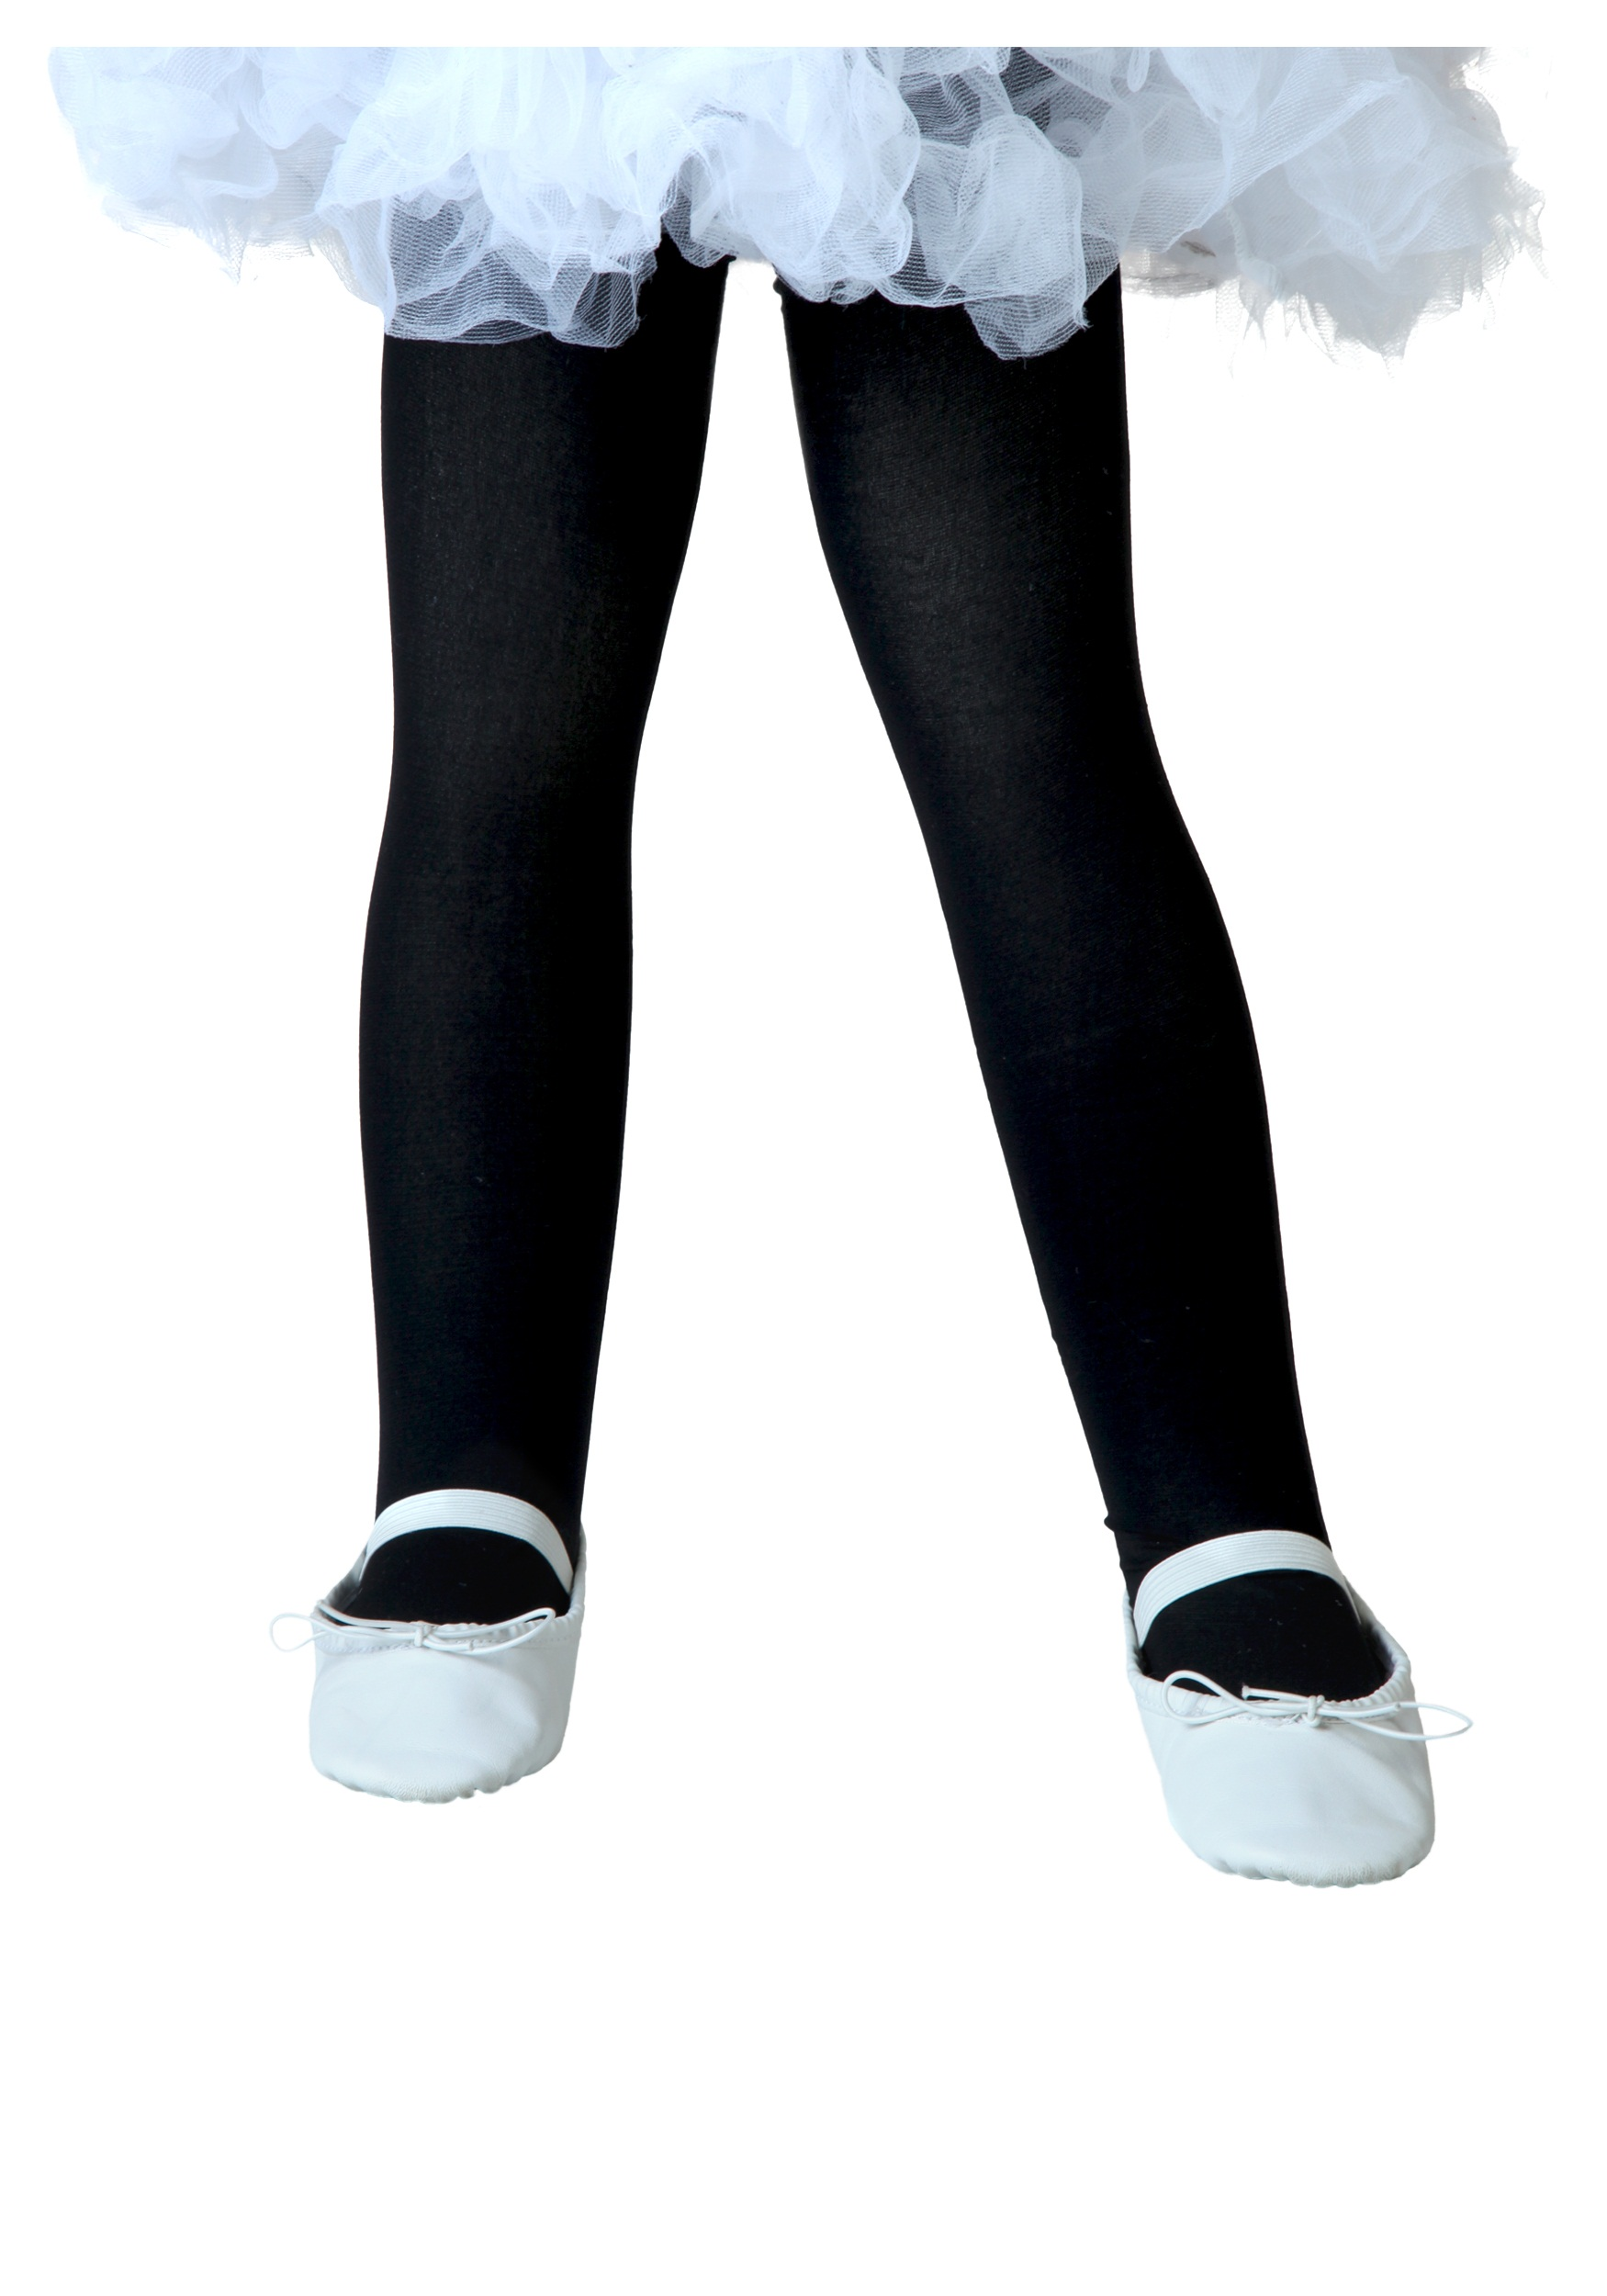 Free shipping BOTH ways on girls black tights, from our vast selection of styles. Fast delivery, and 24/7/ real-person service with a smile. Click or call